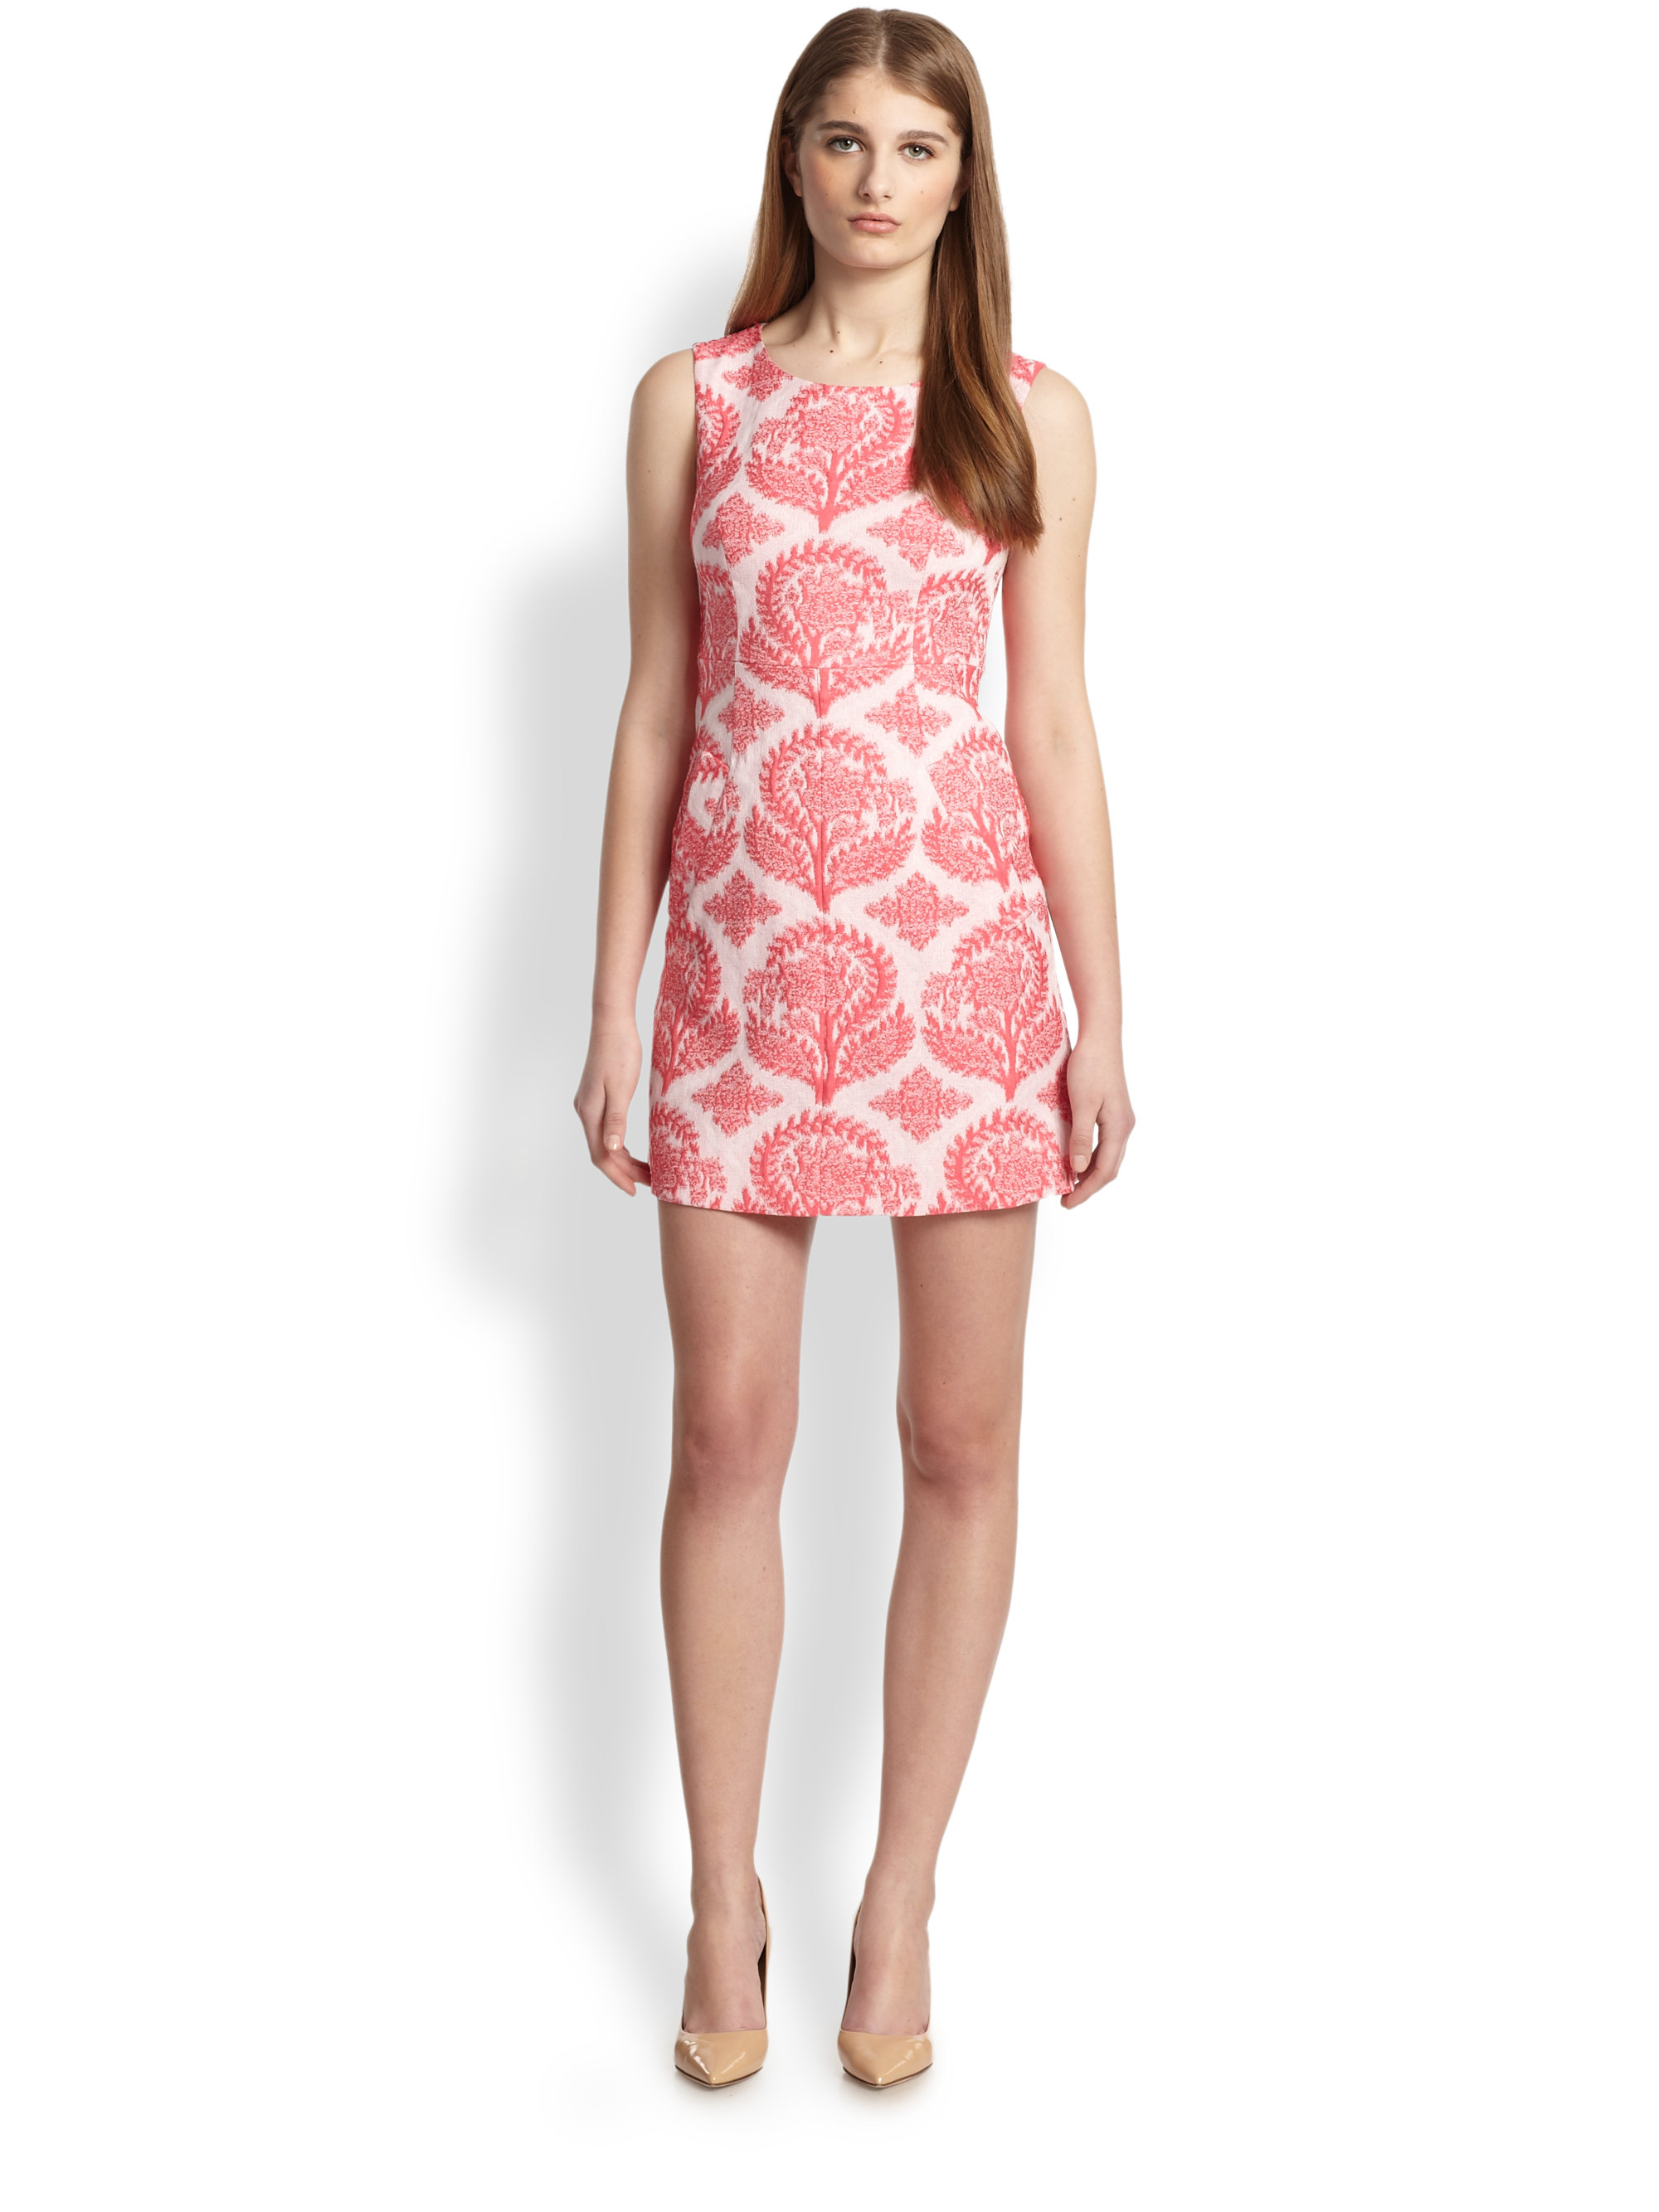 Diane von furstenberg capreena floral embroidered dress in for Diane von furstenberg clothes